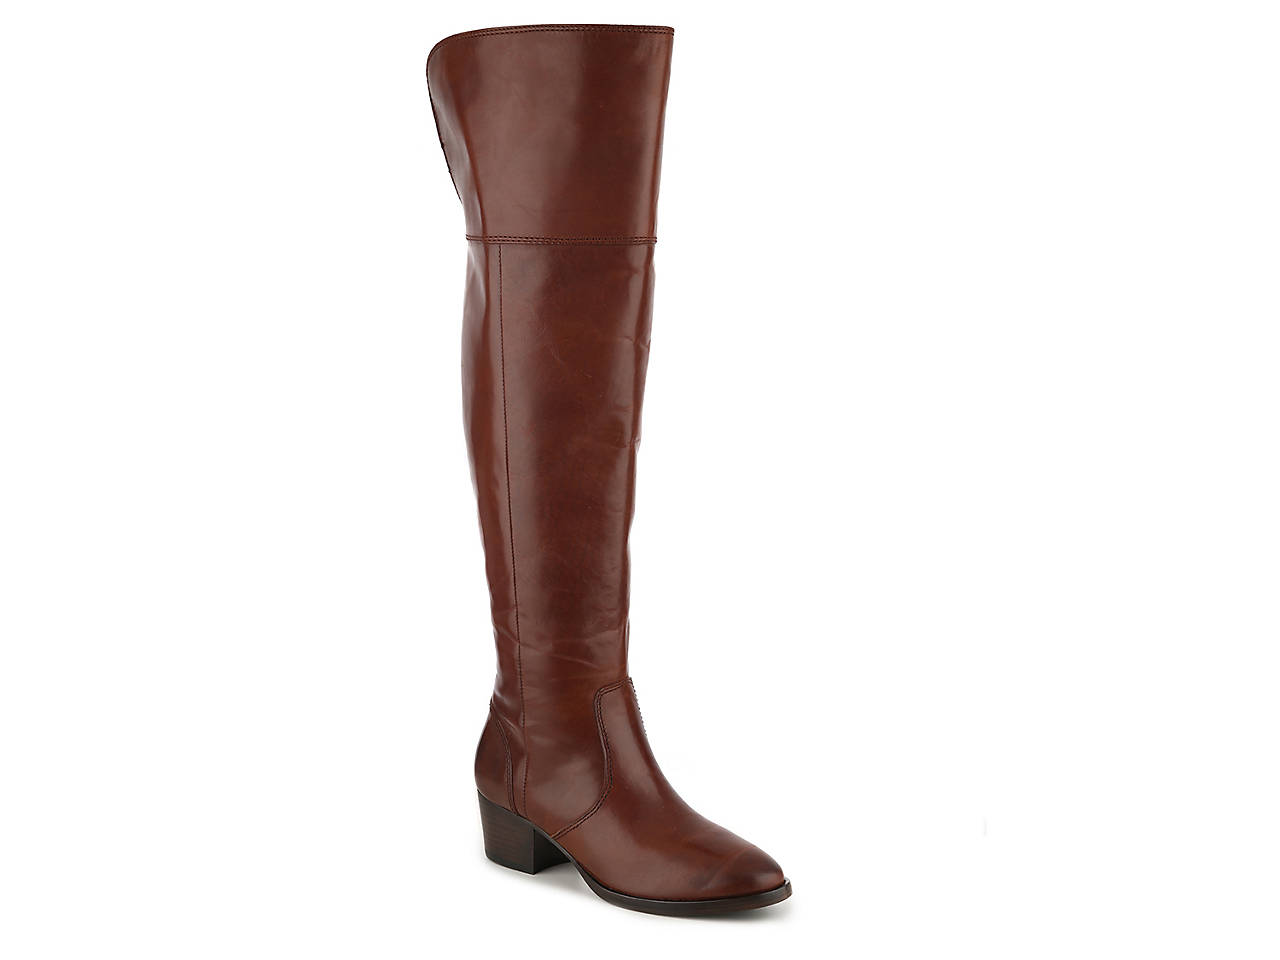 3a7927b99d5c5 Frye Clara Over The Knee Boot Women's Shoes | DSW